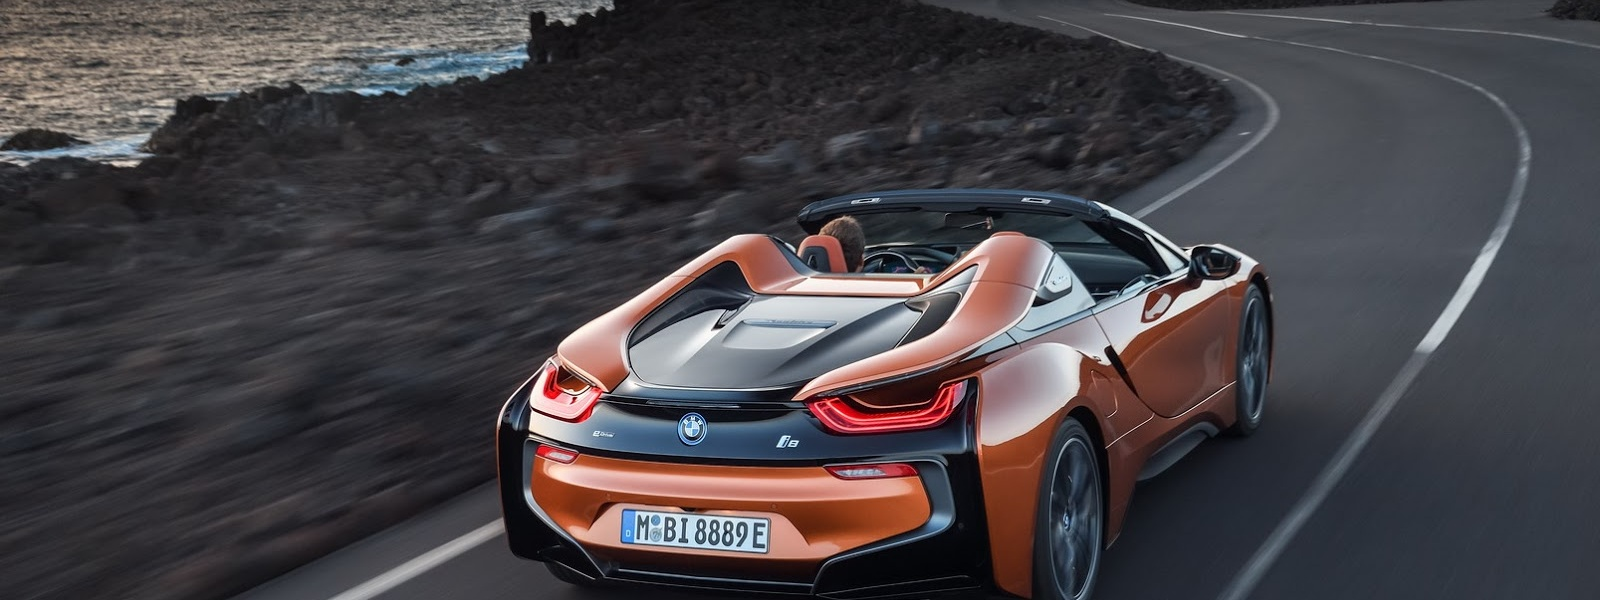 2019-BMW-i8-Roadster-Coupe-66.jpg